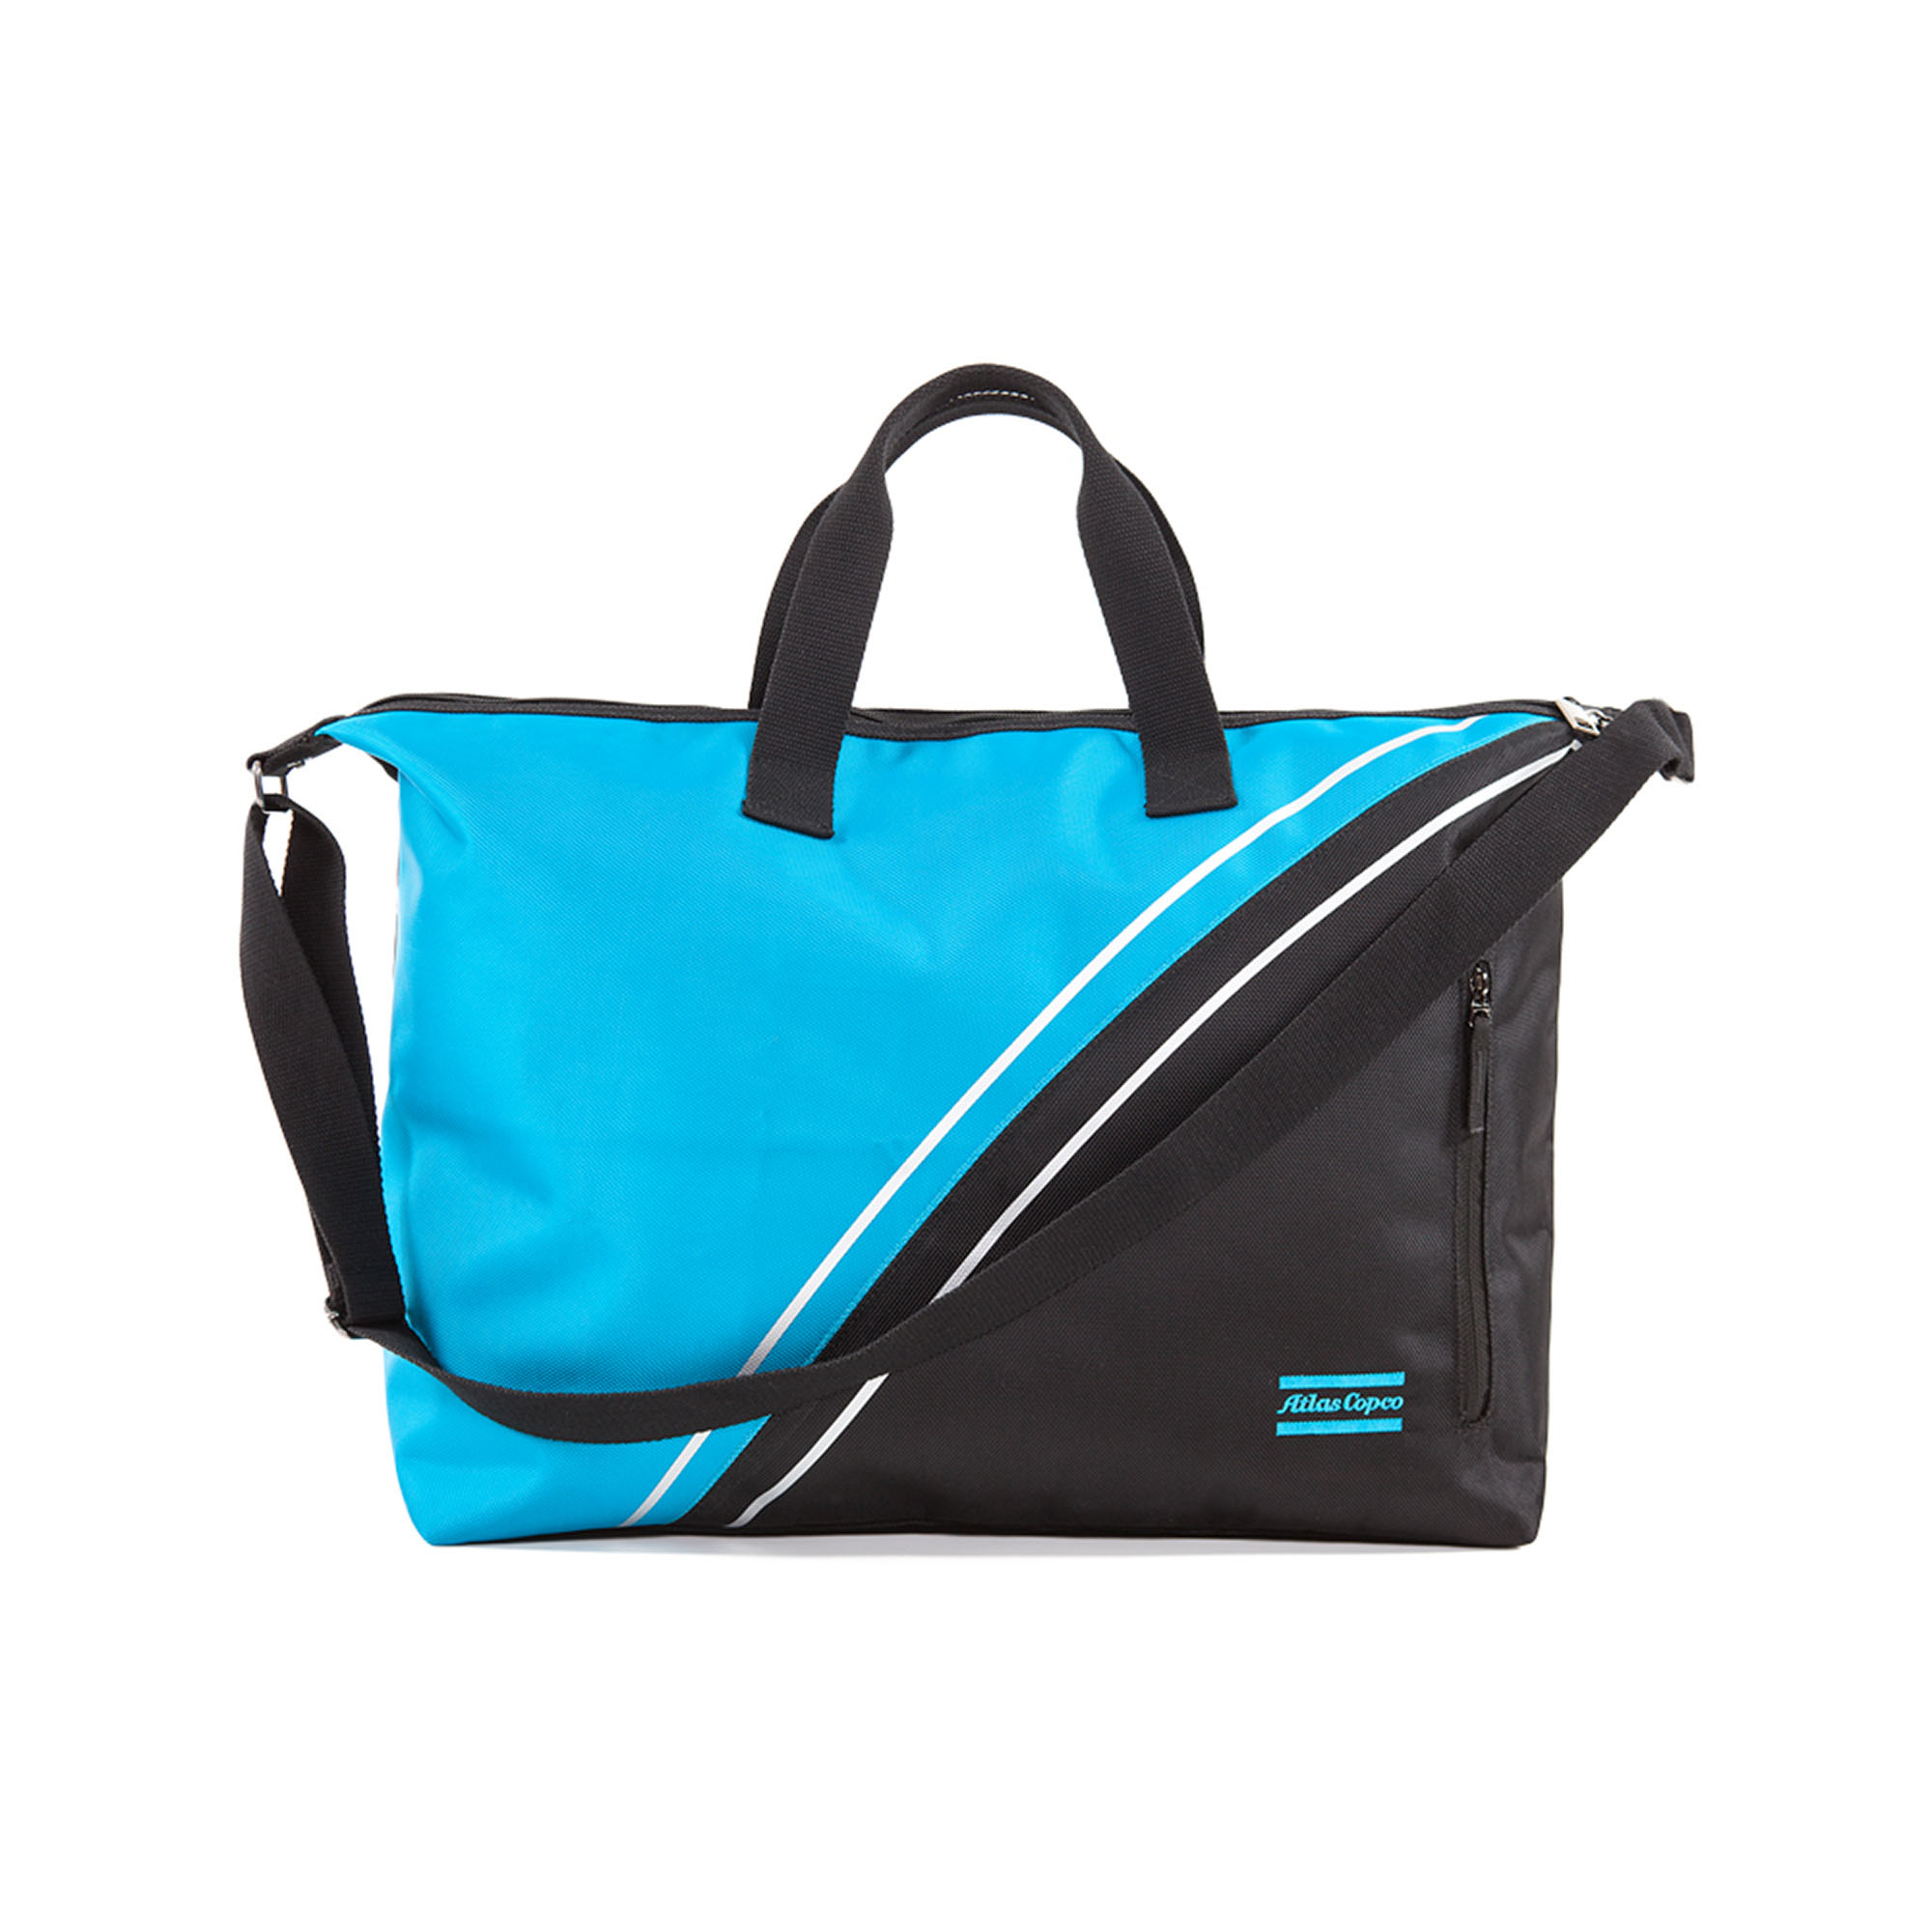 <p>Good-sized bag, perfect for most sports activities. The duffle bag has long been a perfect choice for active people. Classic military look upgraded to a sporty, modern version in Atlas Copco Performance design.</p>